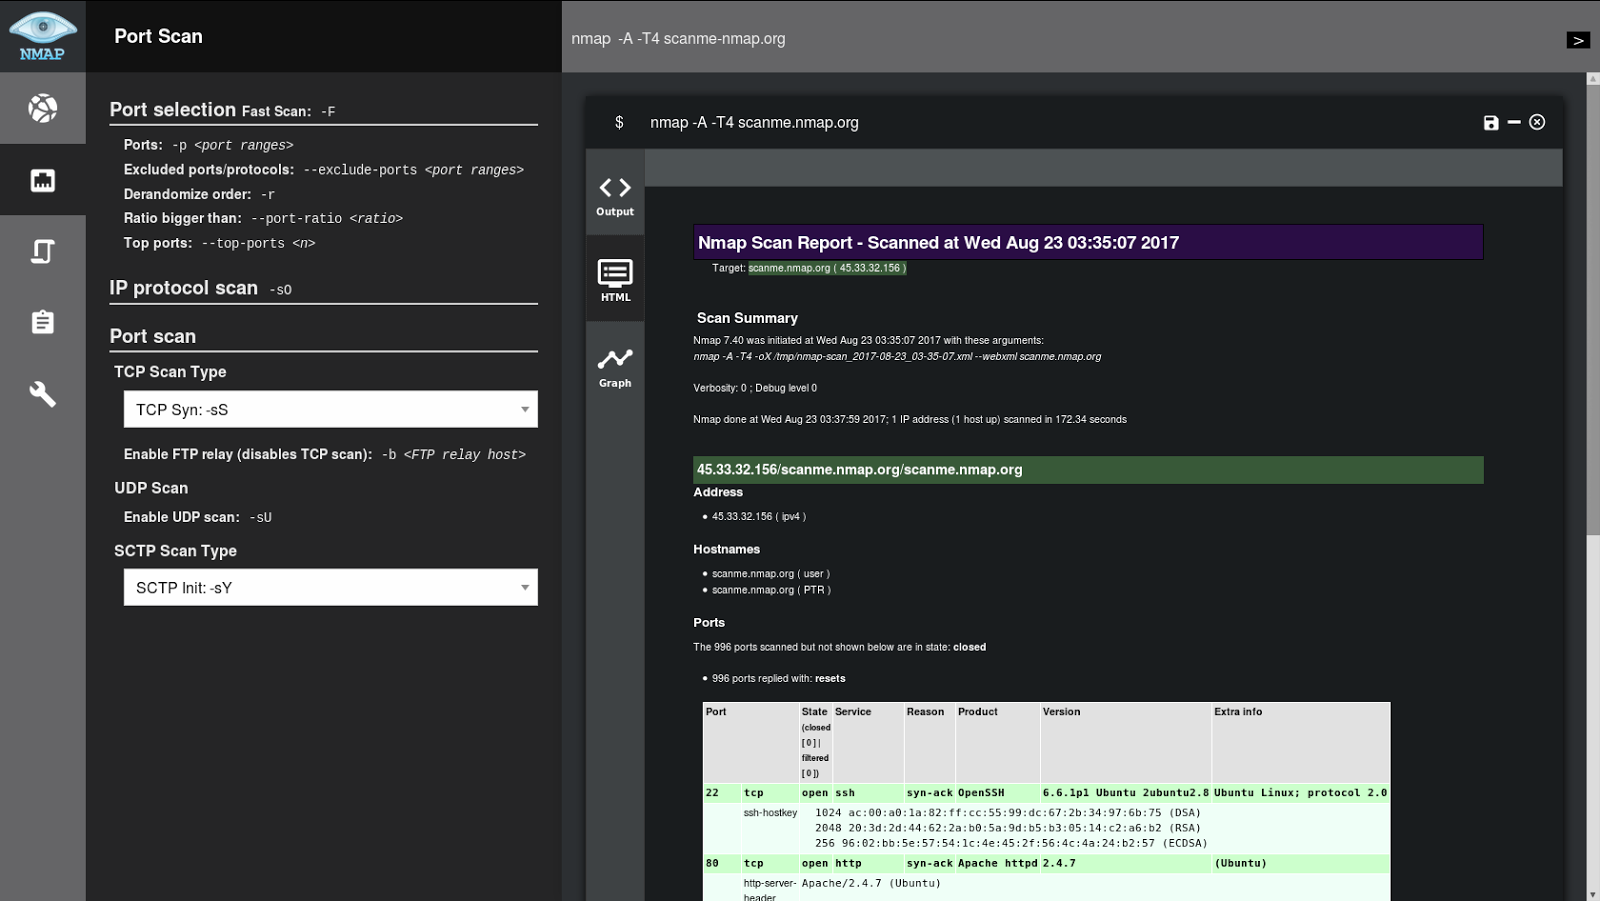 NMapGUI - Advanced Graphical User Interface for NMap